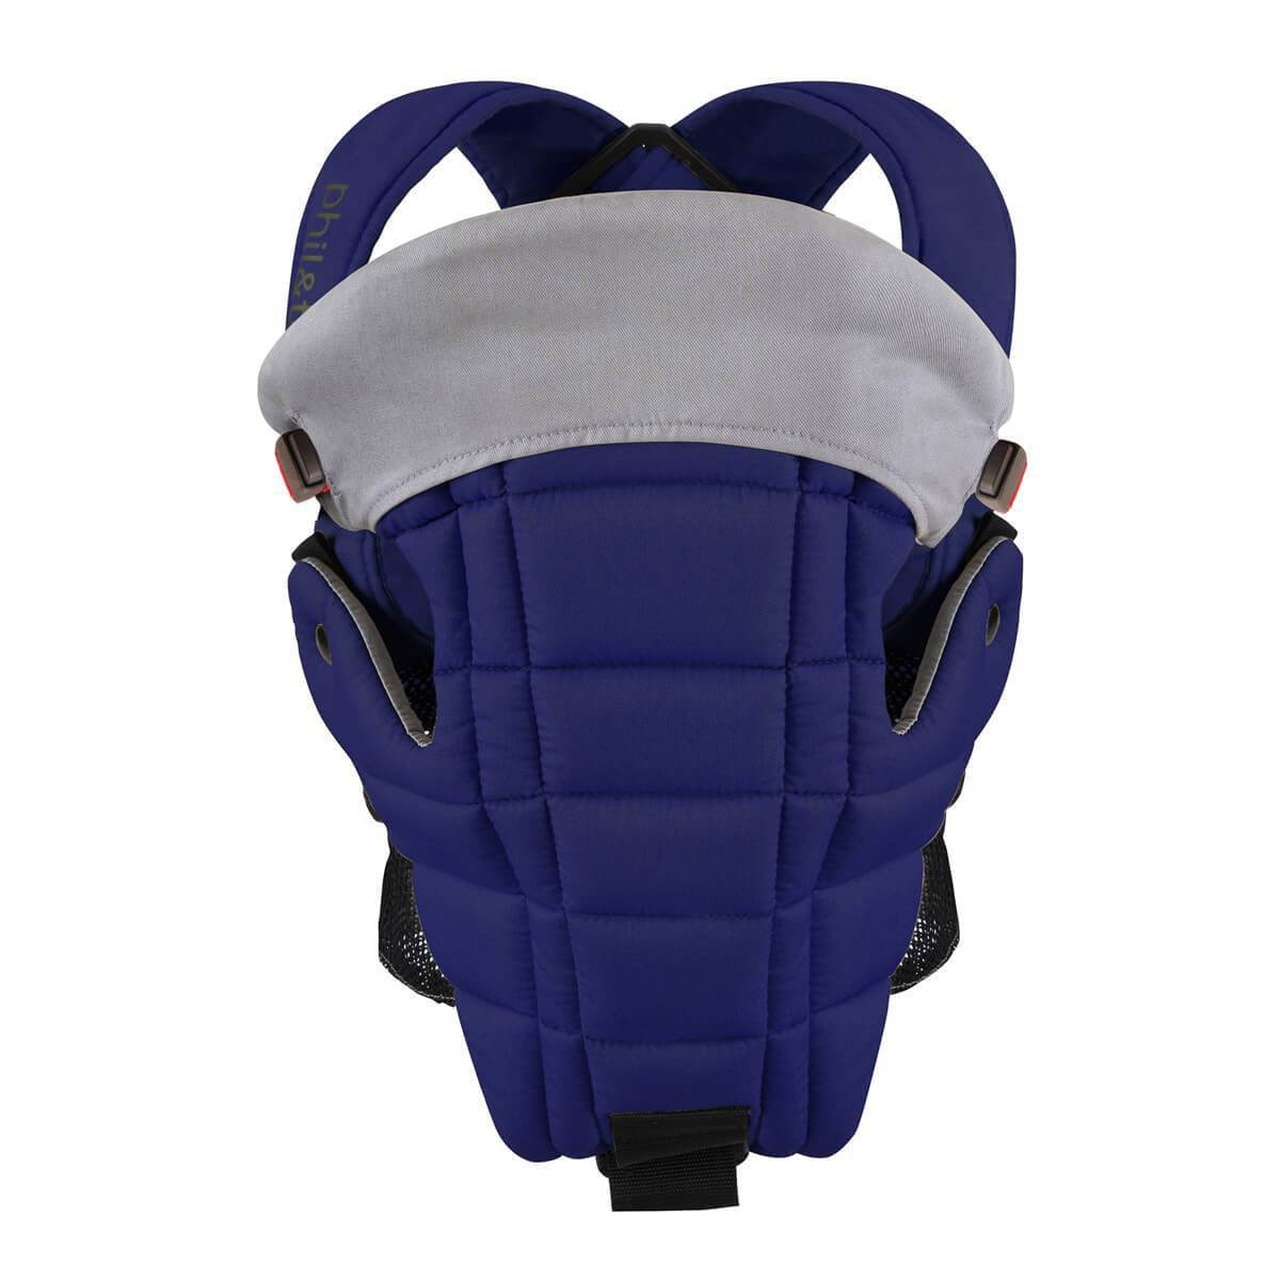 Phil & Teds Emotion Baby Carrier at Baby Barn Discounts Midnight Phil & Teds Emotion baby carrier is designed to nurture both parent & baby.